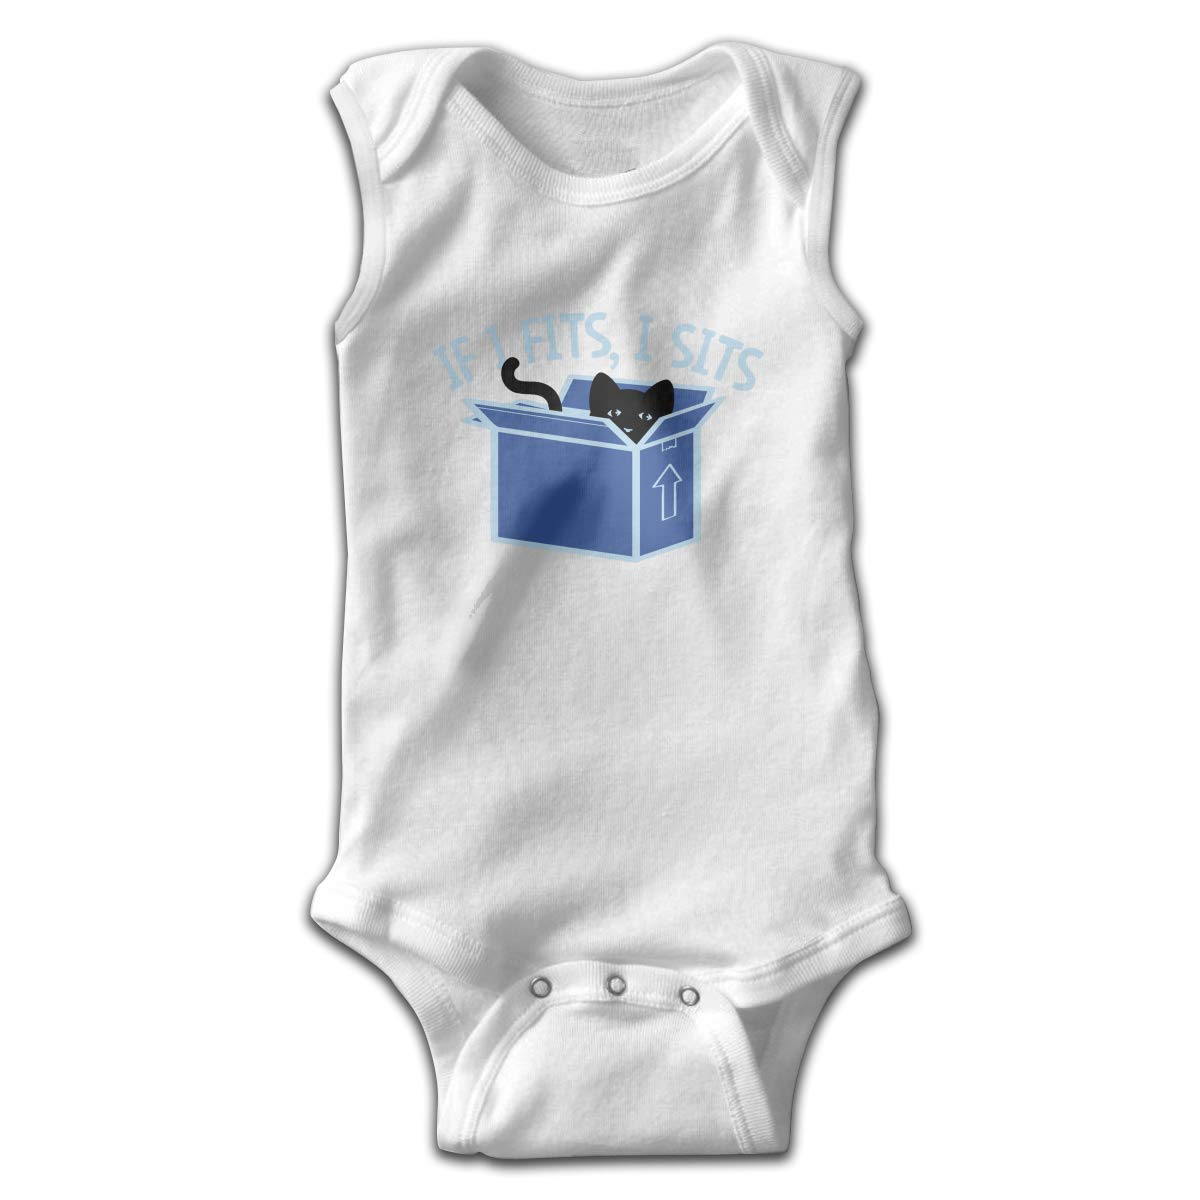 Toddler Baby Girls Rompers Sleeveless Cotton Onesie,If I Fits I Sits Outfit Spring Pajamas